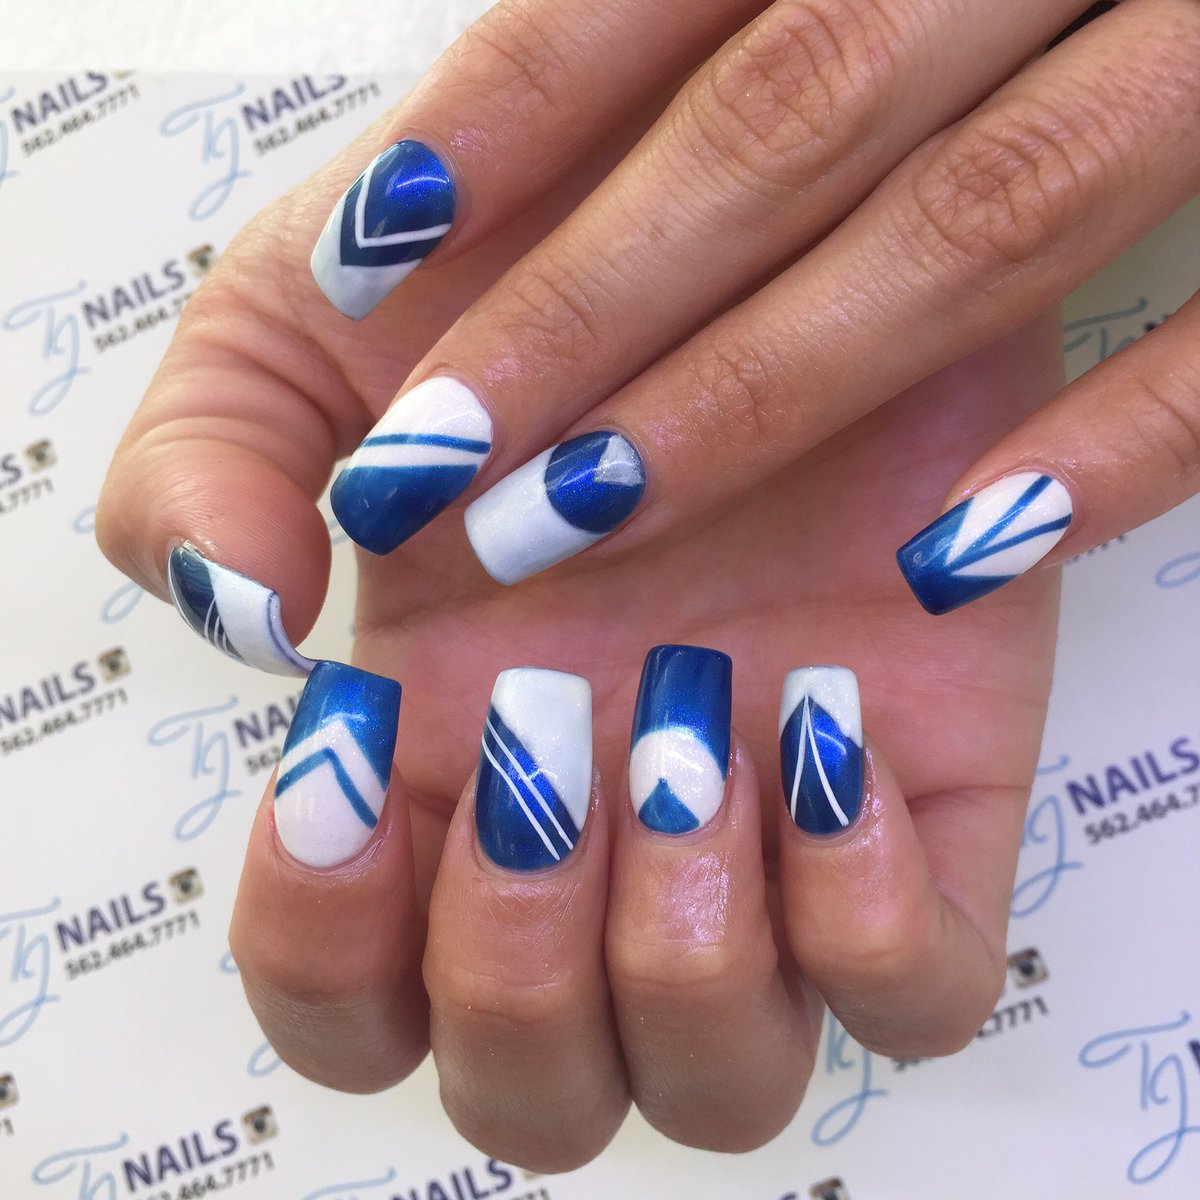 TJ Nails on Twitter: \